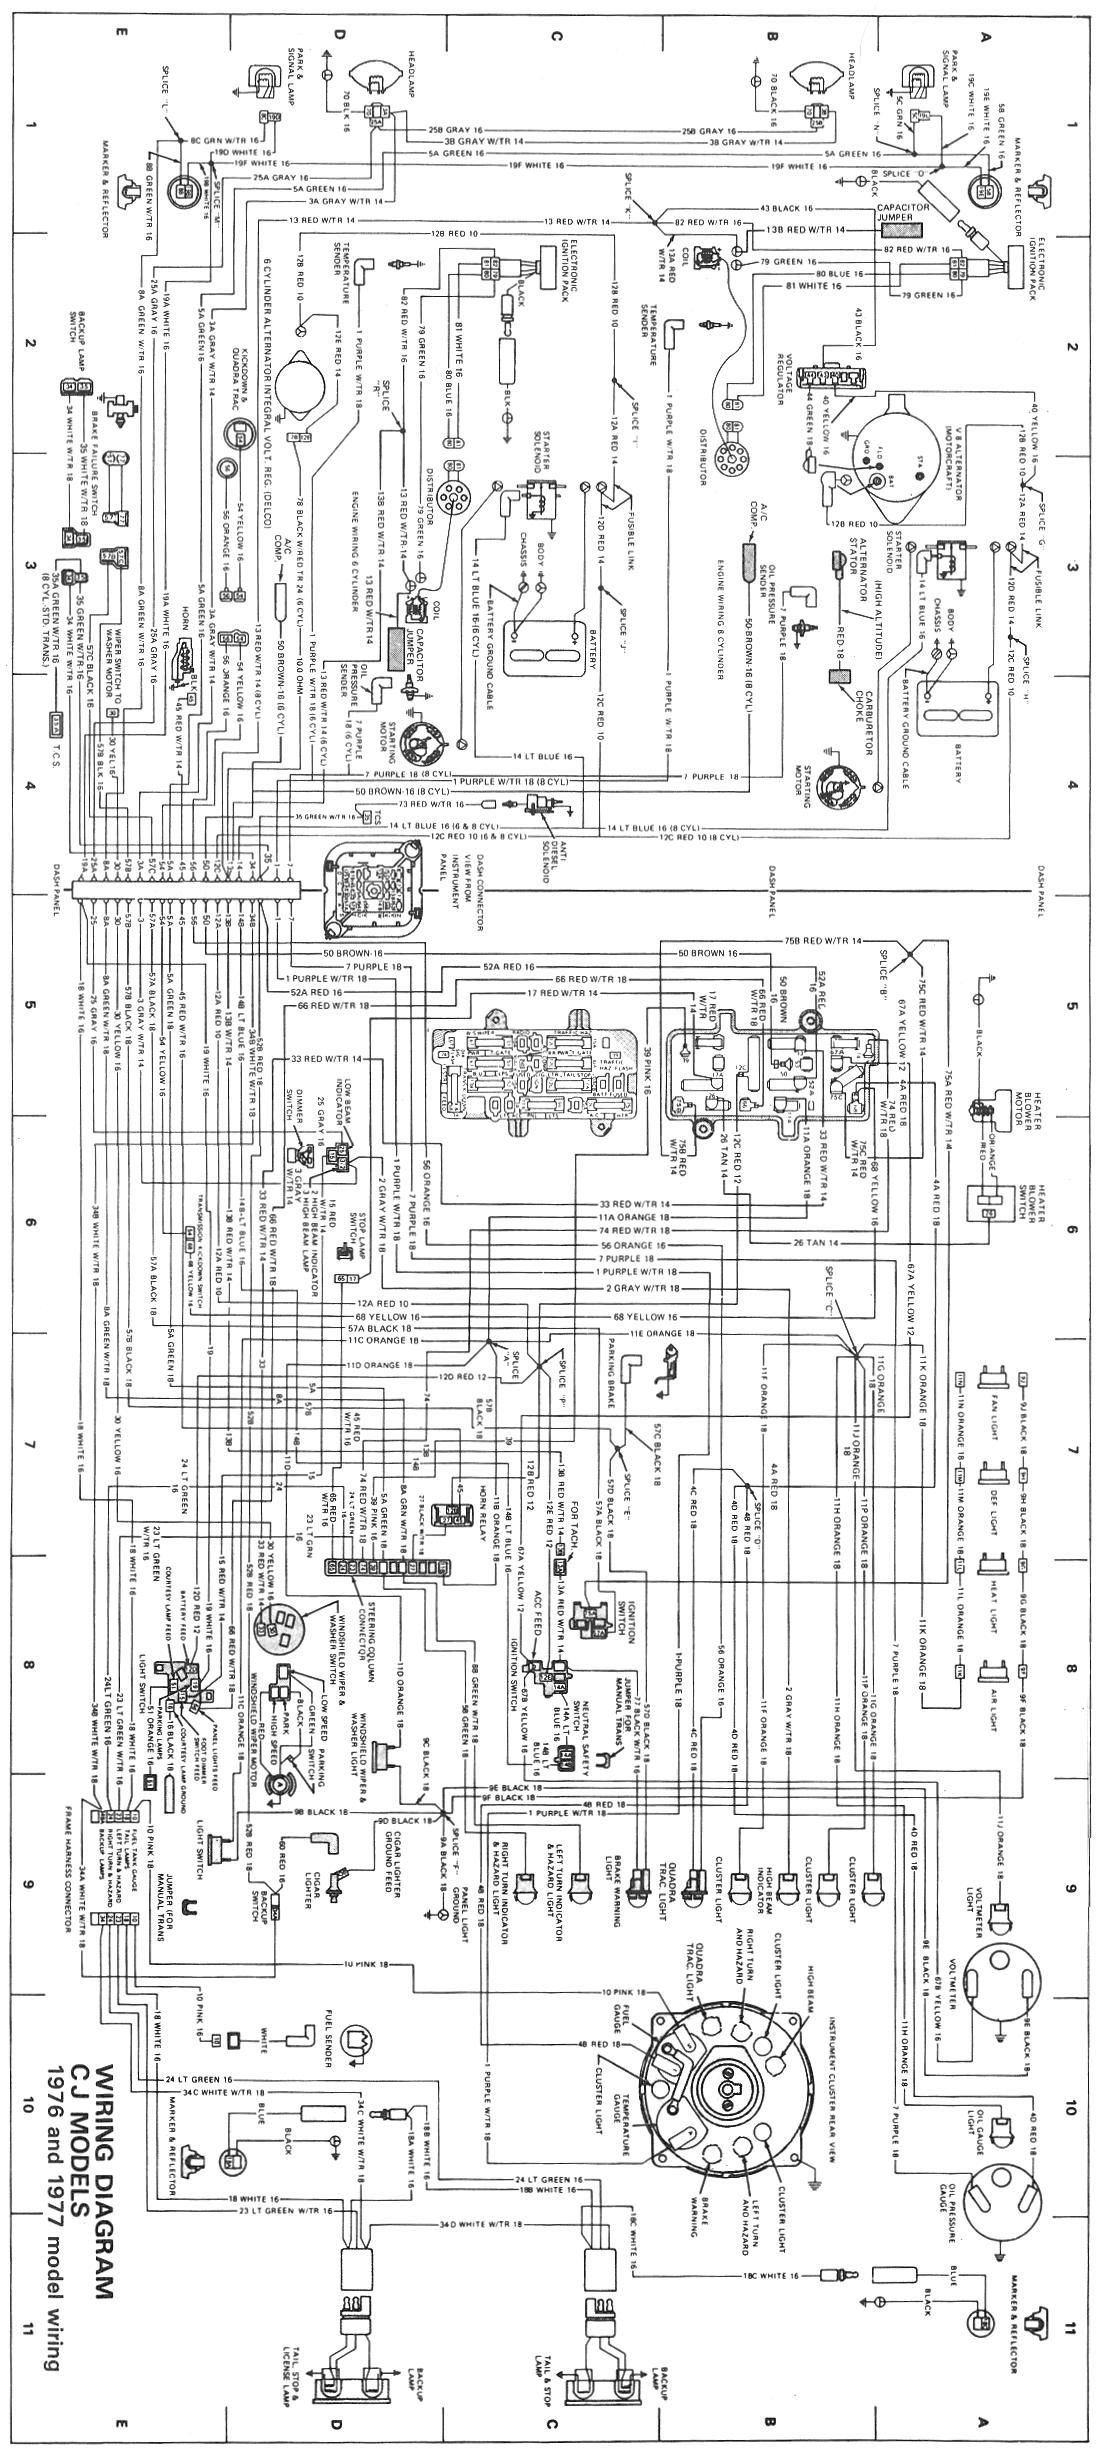 1977 jeep cj7 wiring diagram for motor